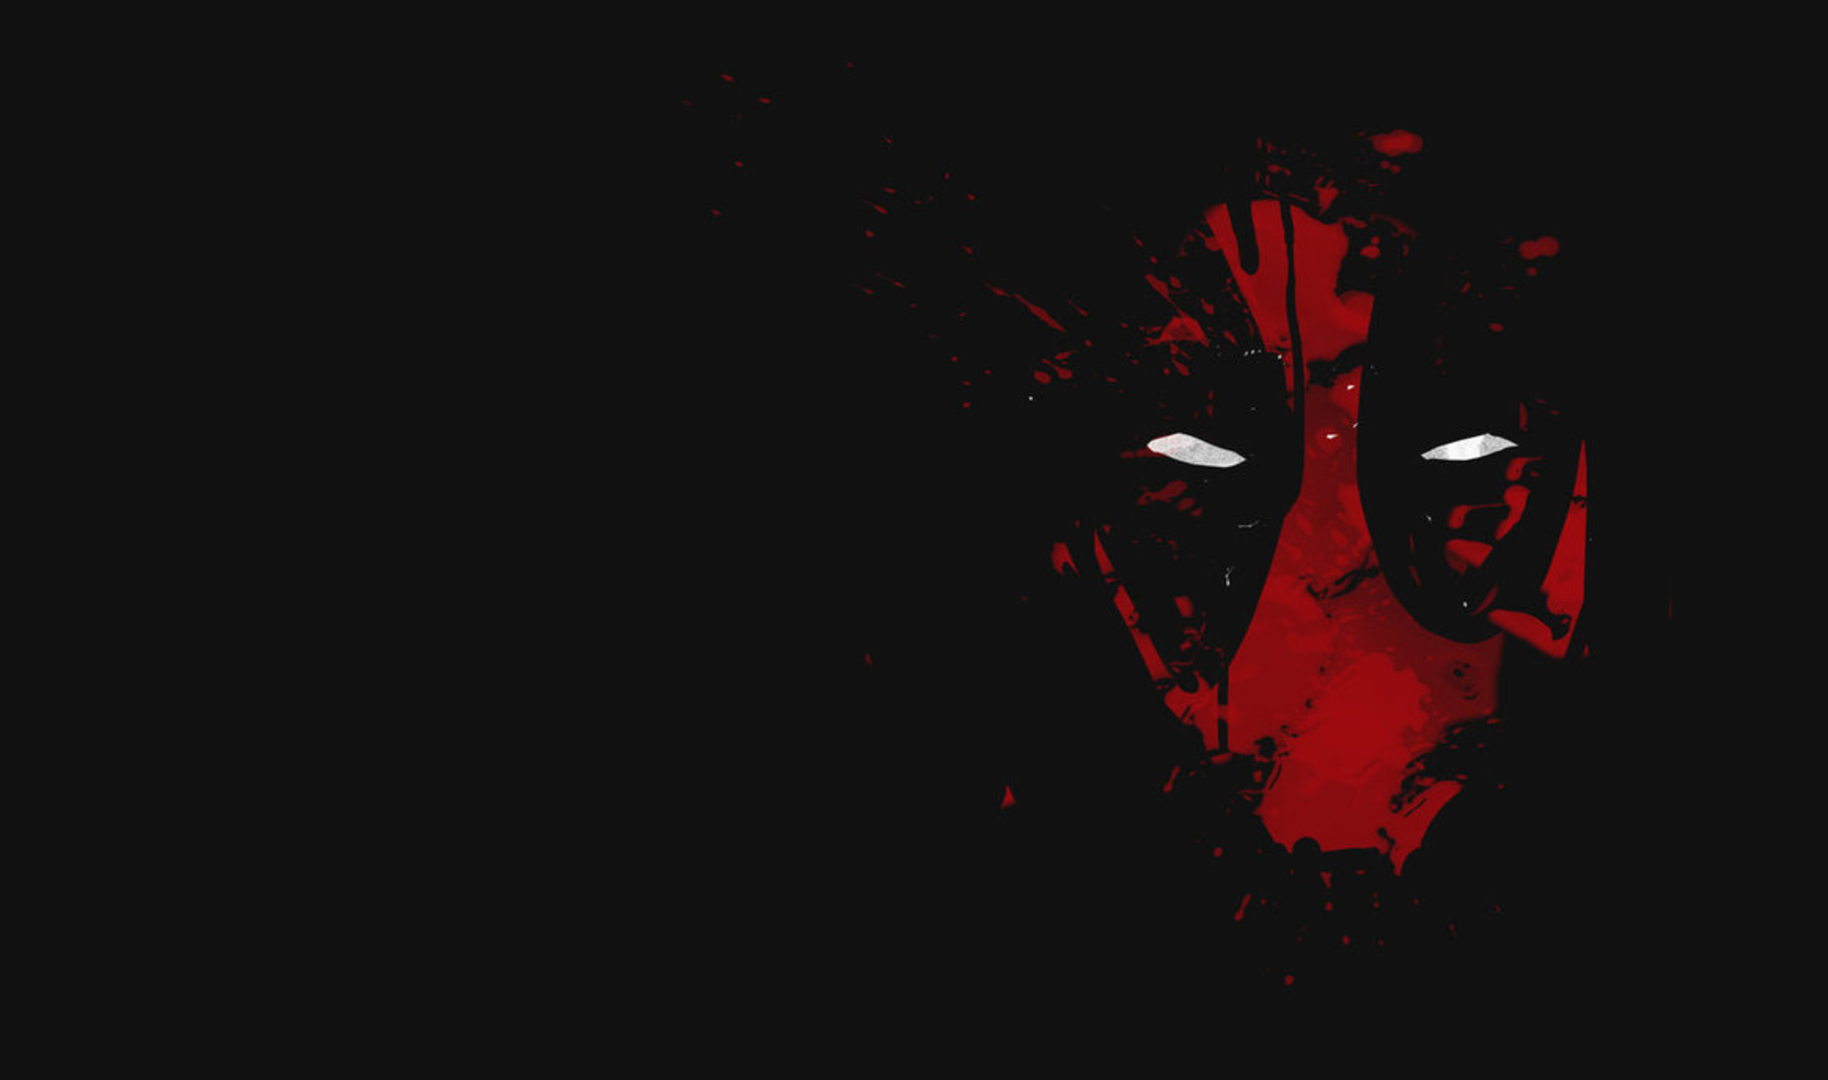 deadpool wallpaper hd 1080p - photo #23